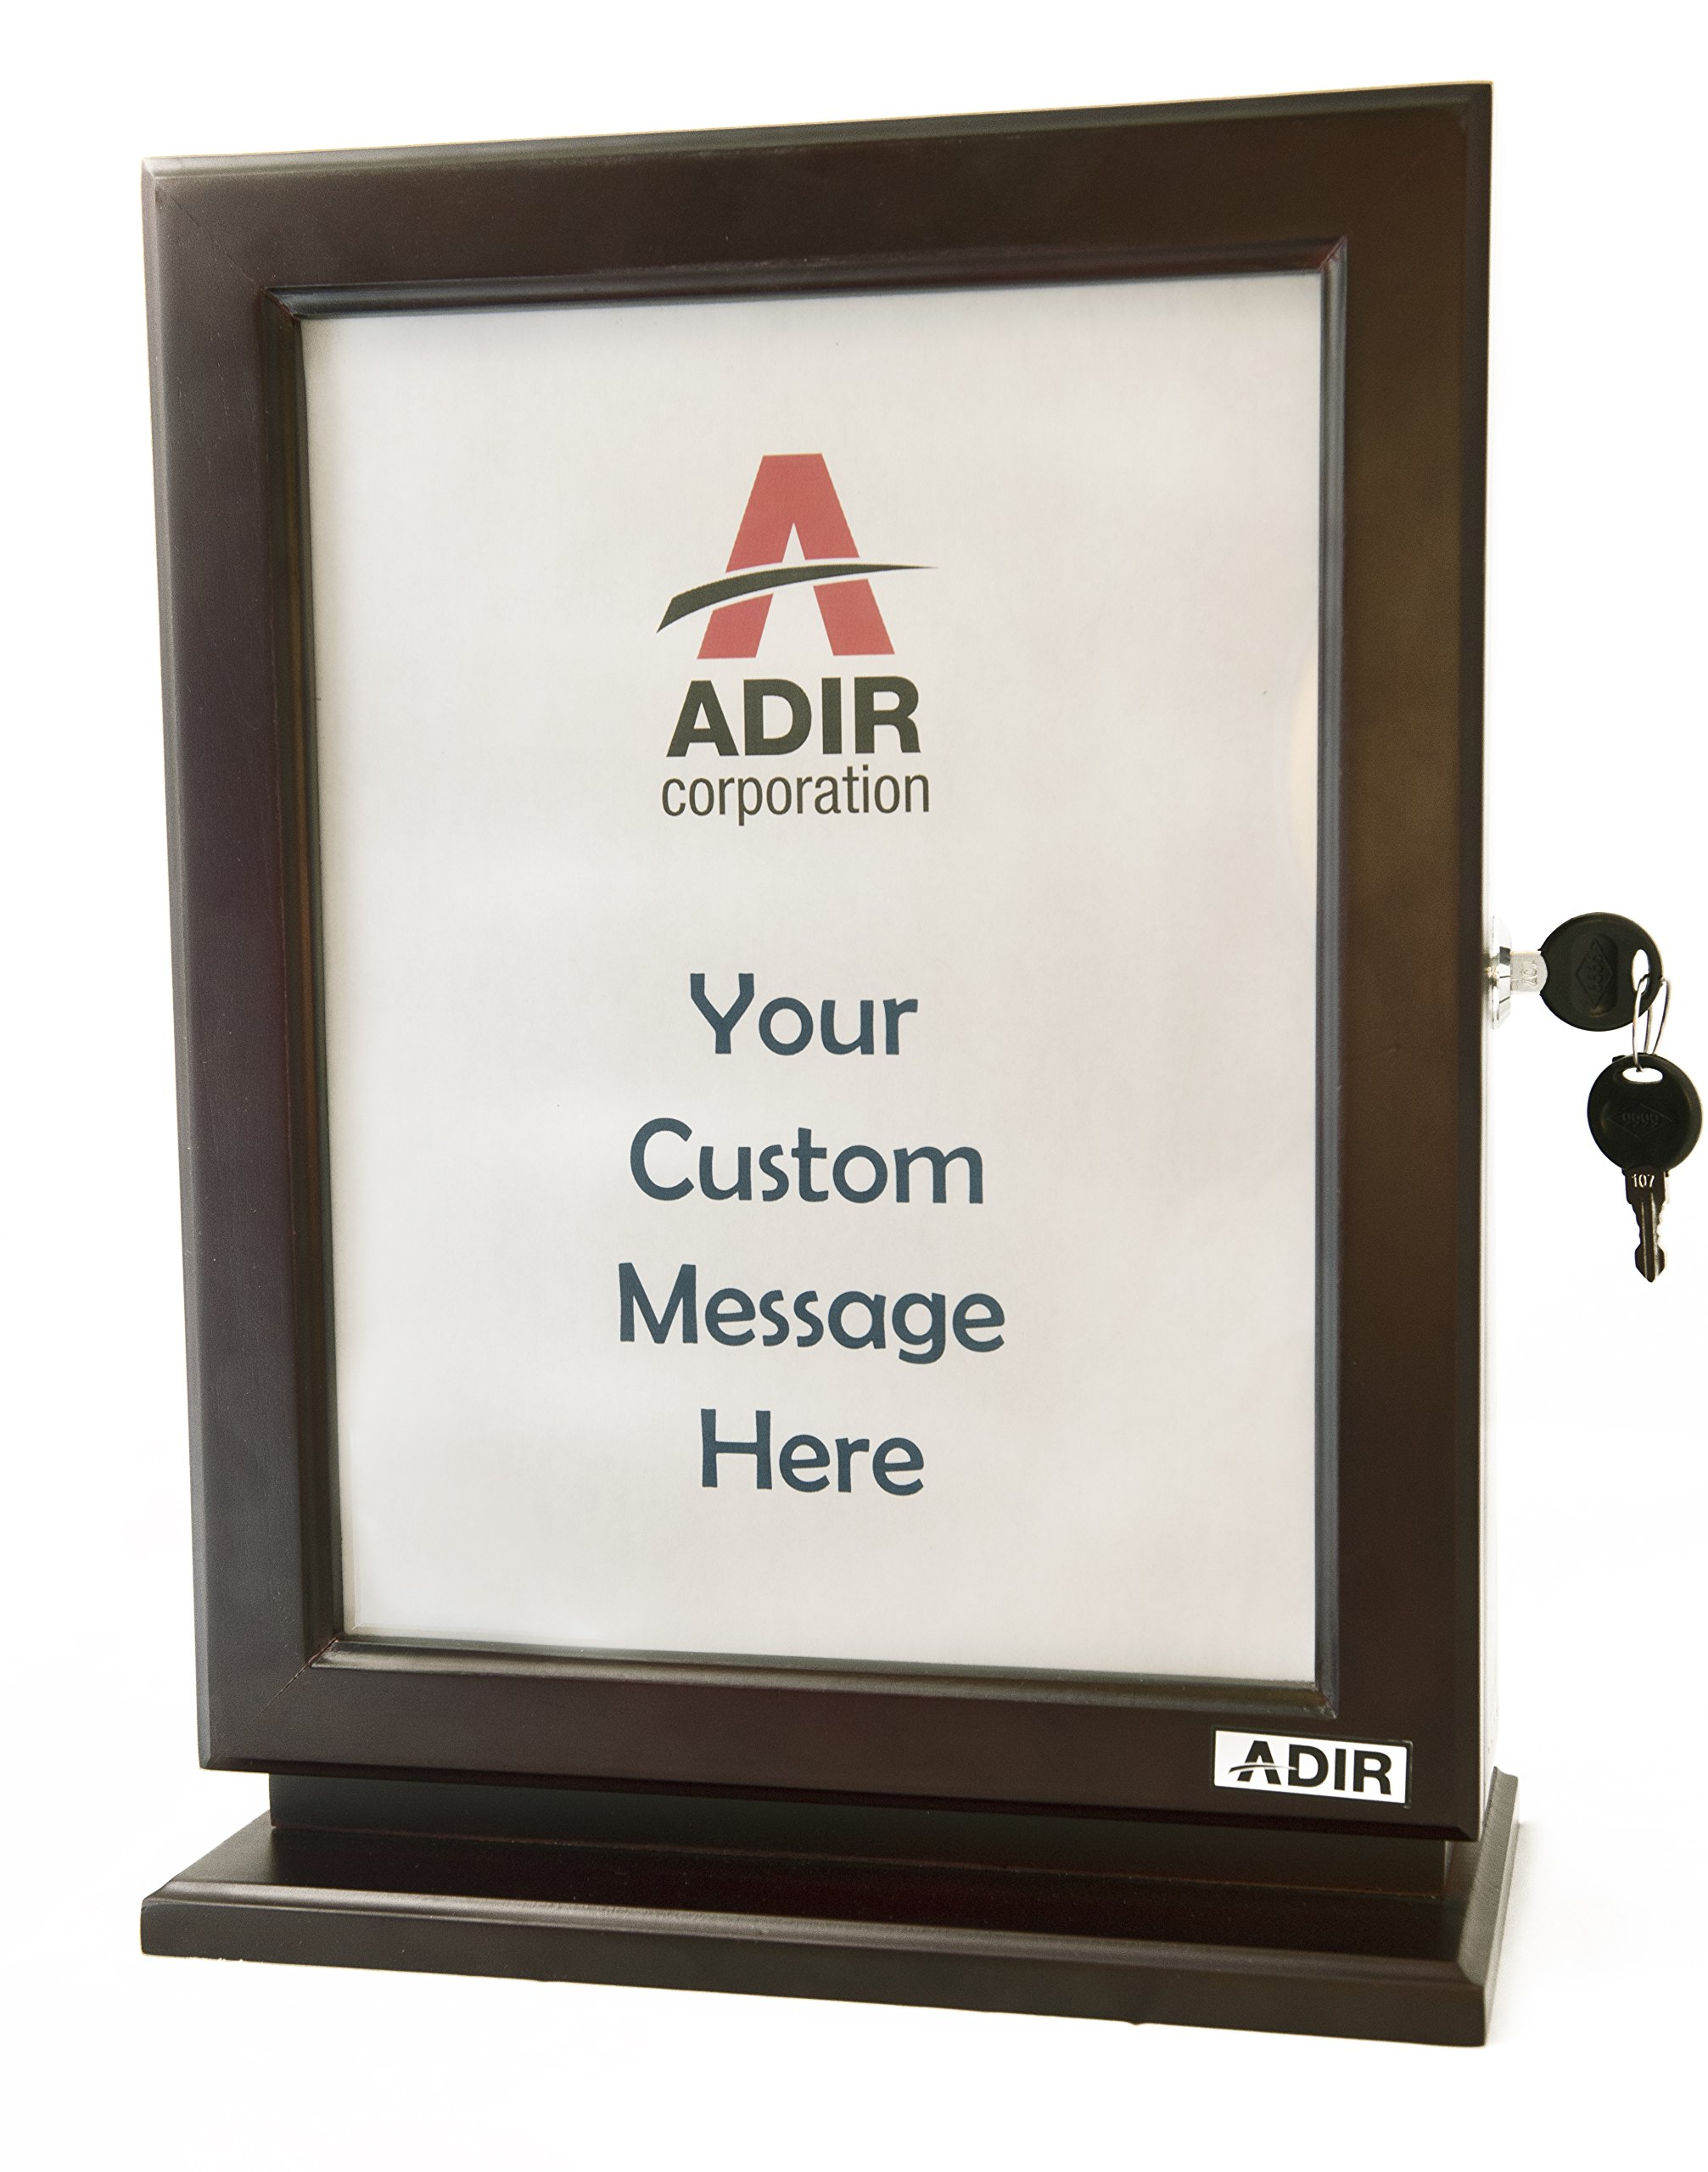 Adir Customizable Wood Suggestion Box - Mahogany - with a Free Pack of Refill Suggestion Box Cards by Adir Corp.